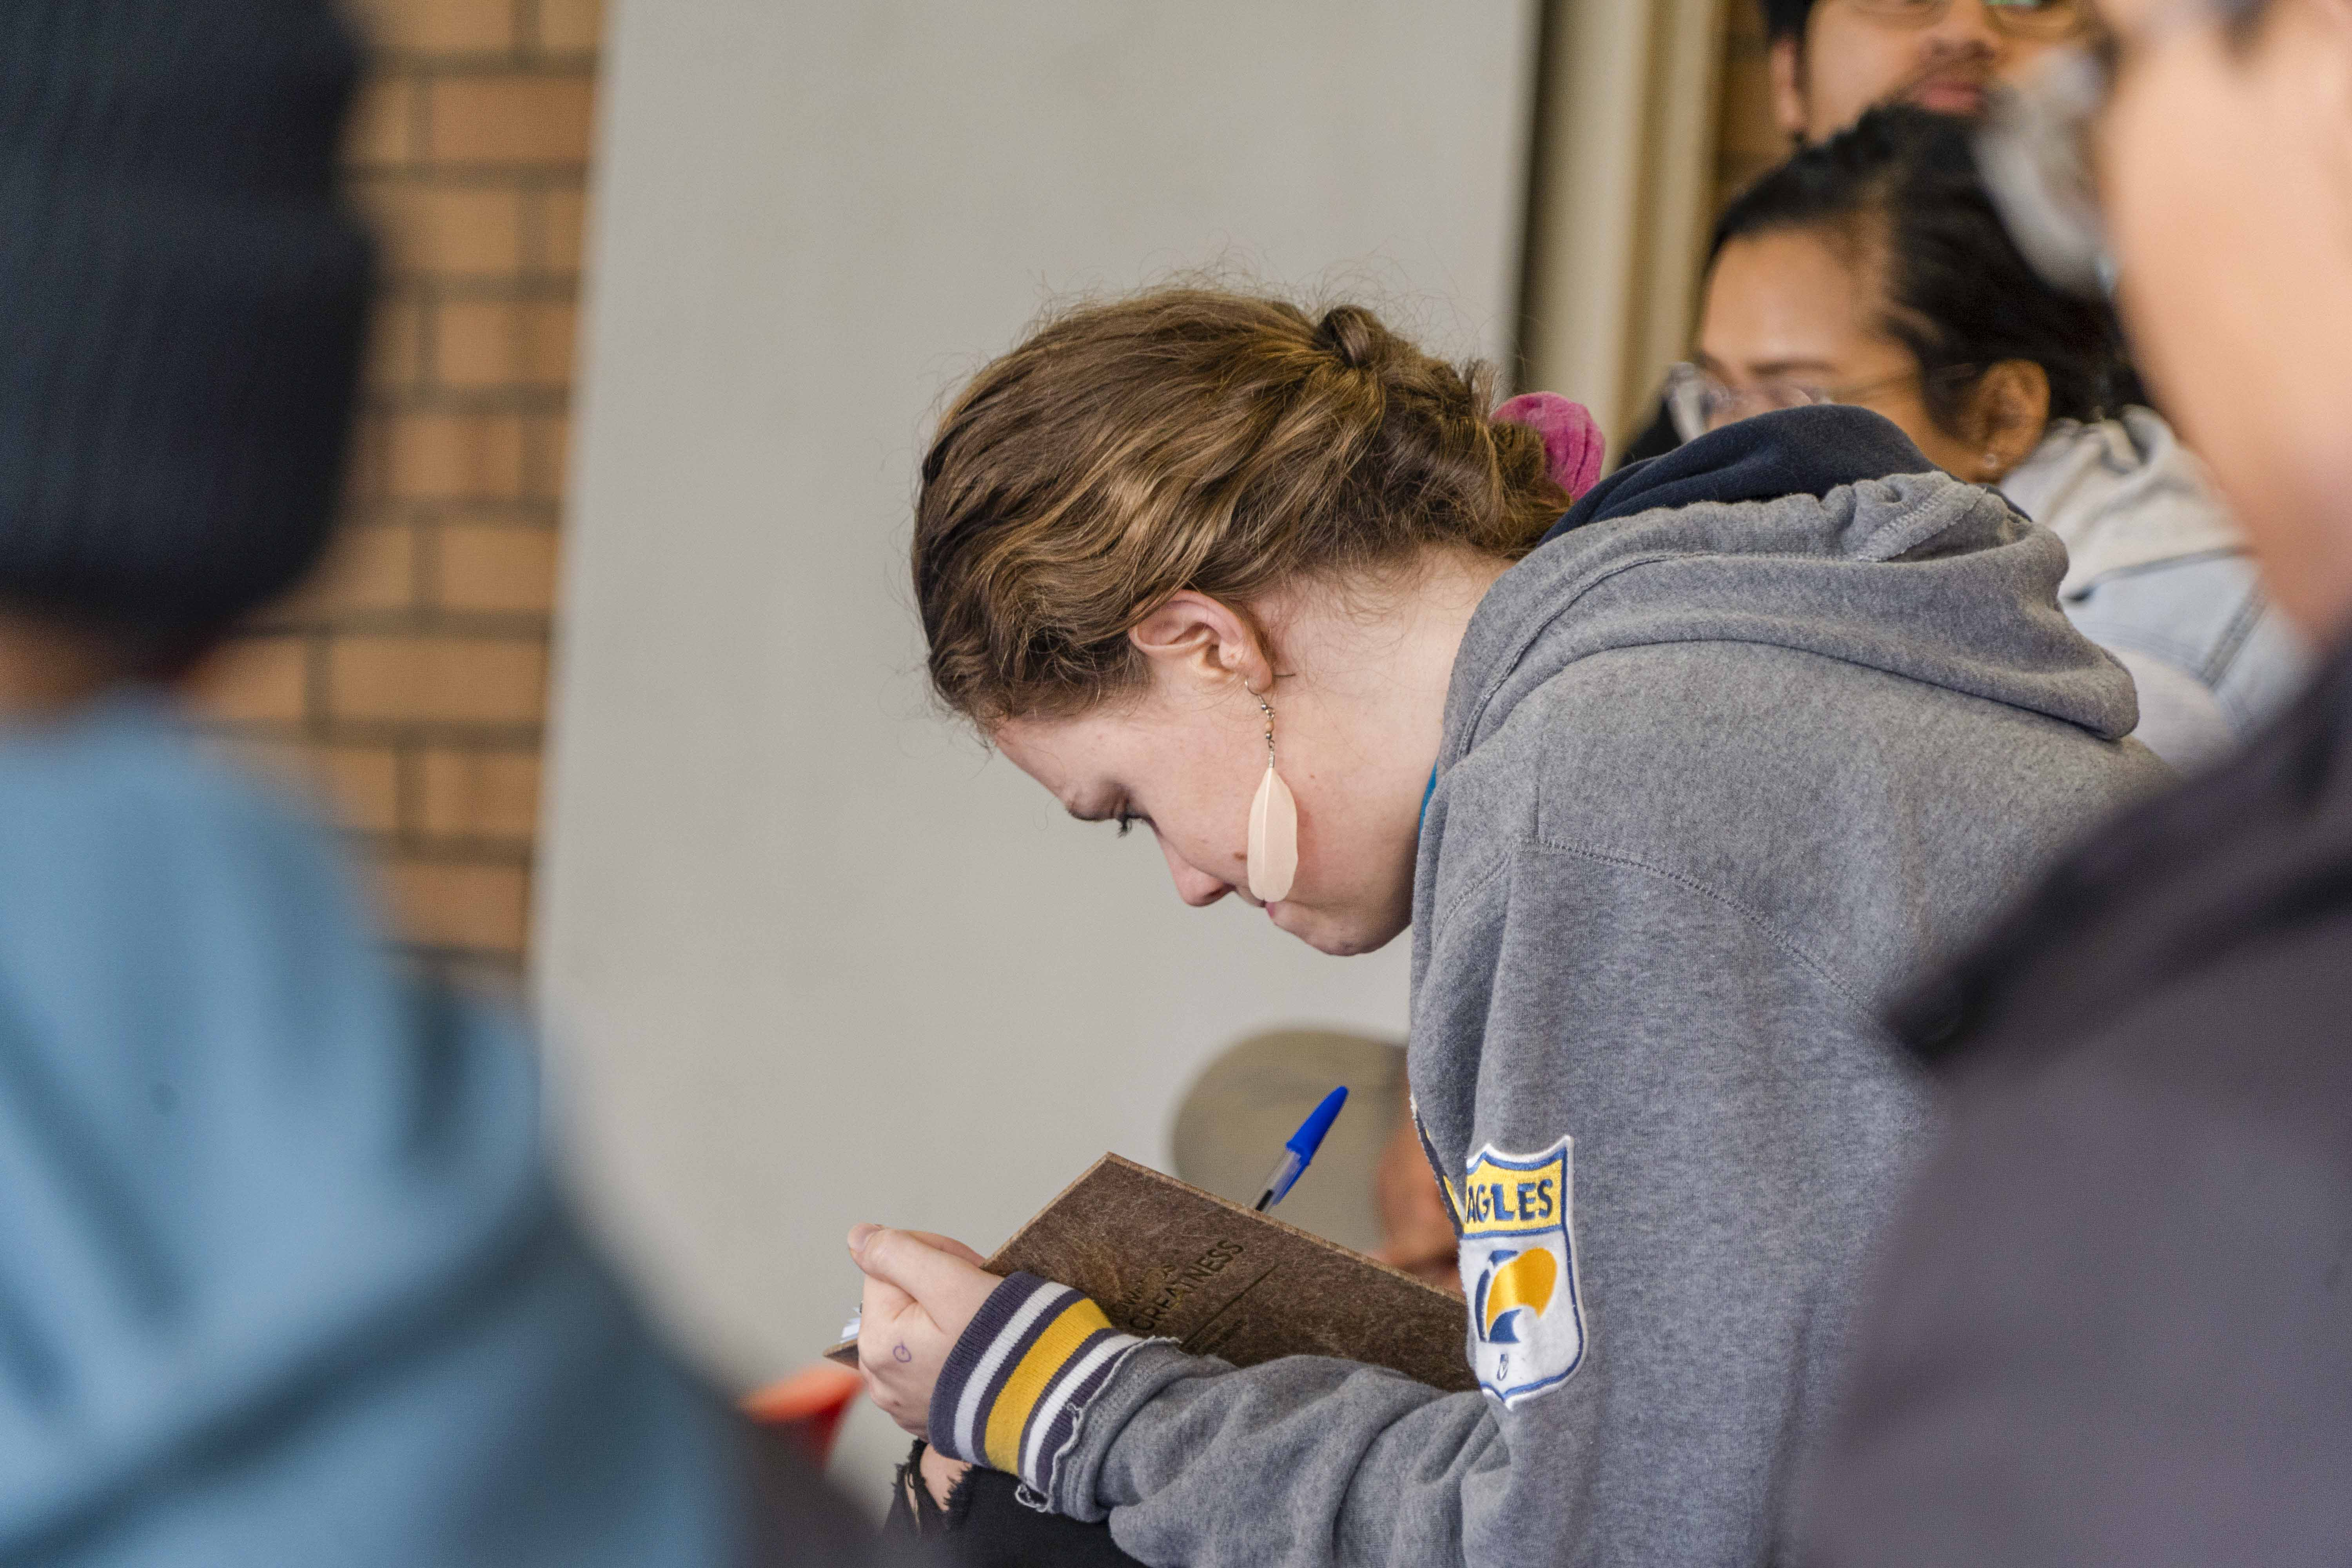 CYM Perth organised a Masterclass event for young people of the Archdiocese of Perth from 5 to 7 July at the Advent Park Convention Centre in Kalamunda. Photo: Josh Low.